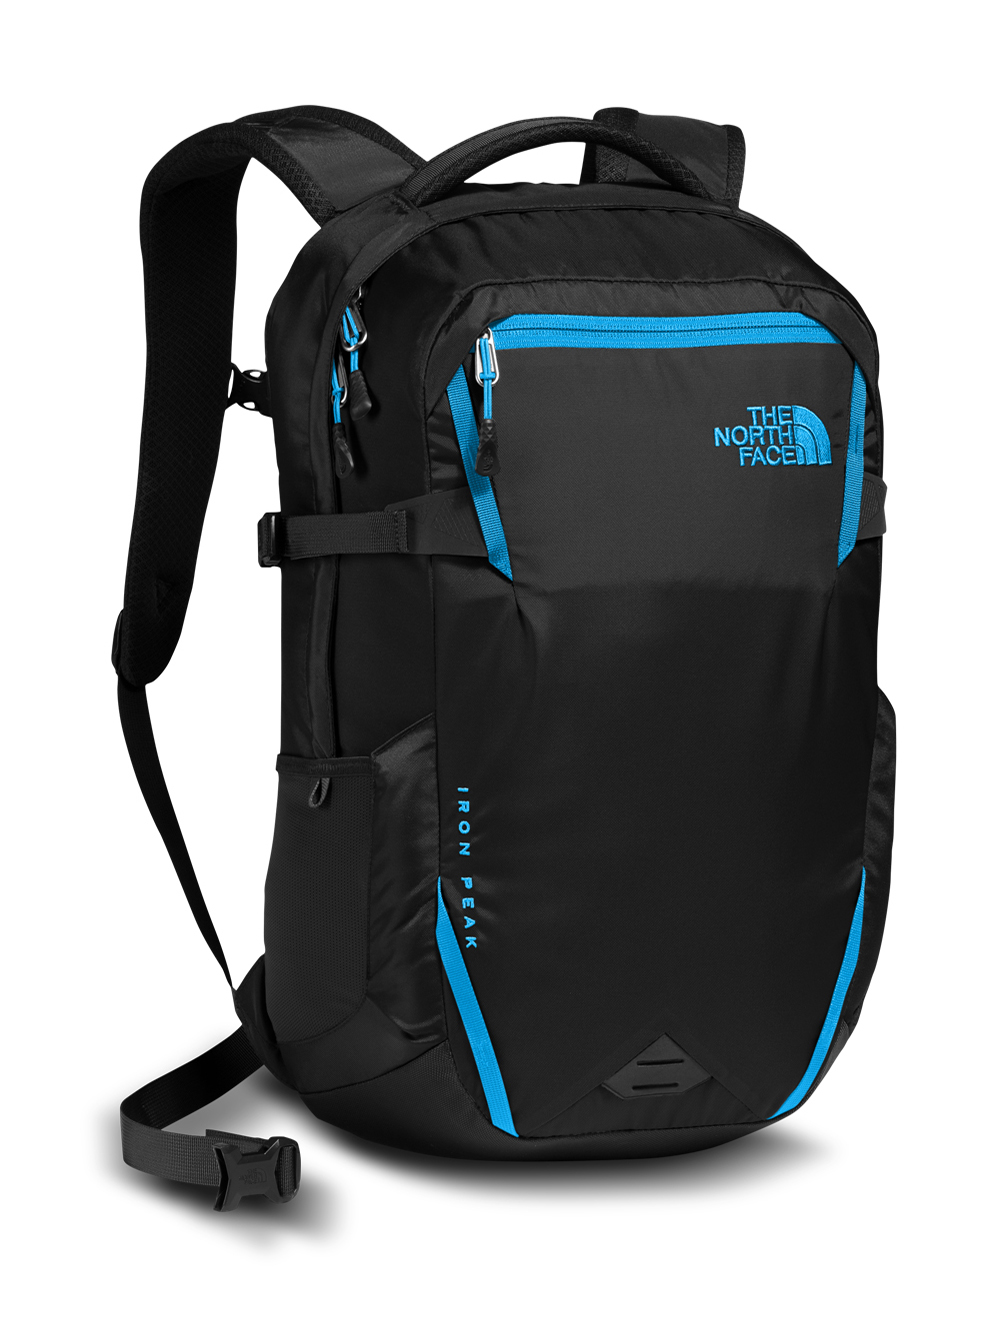 The North Face Iron Peak Backpack - black/hyper blue, one size